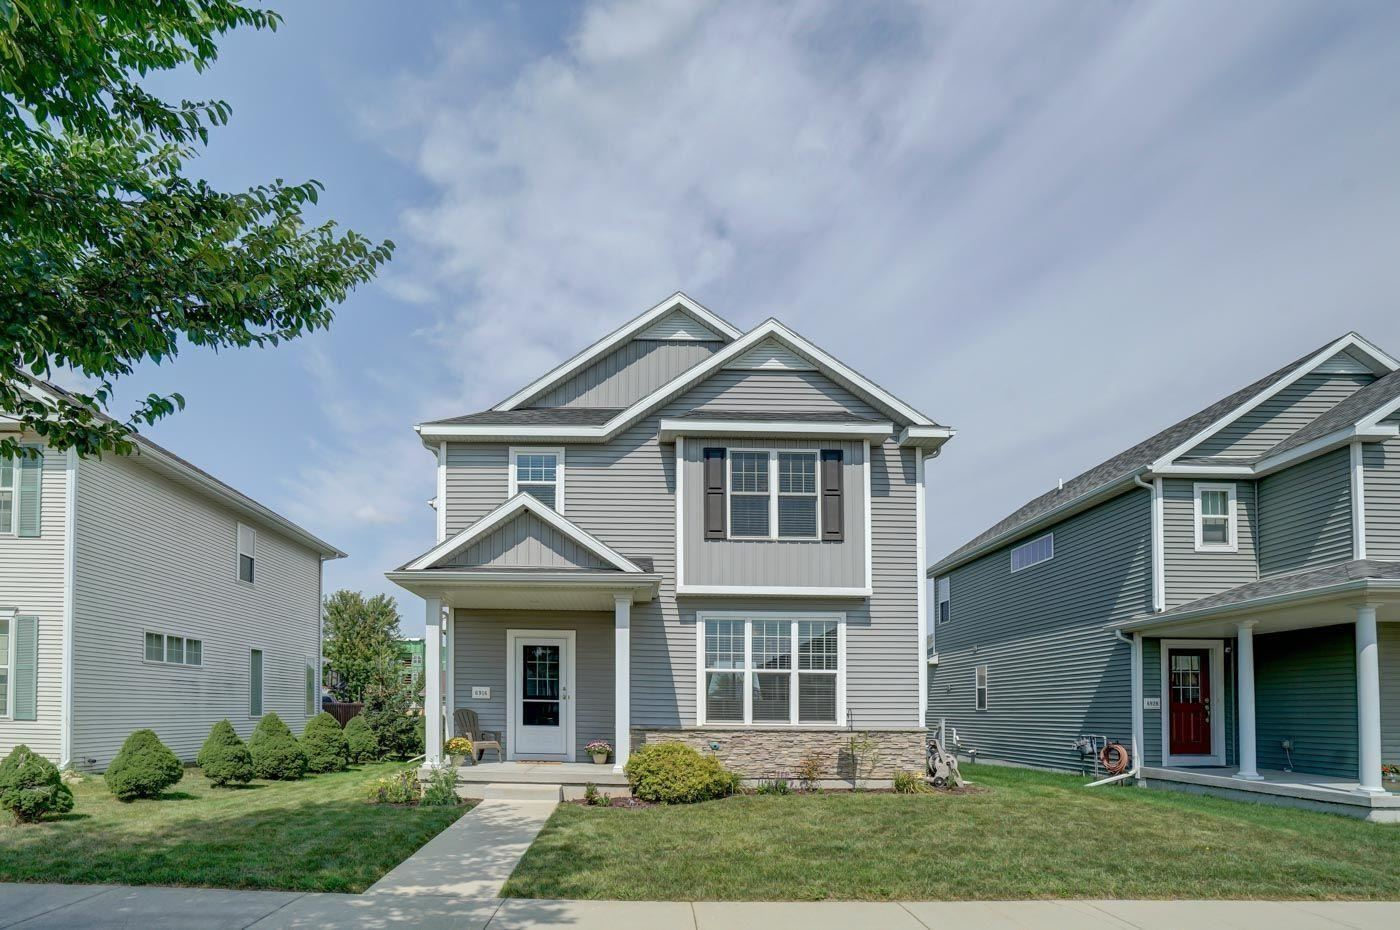 6916 Reston Heights Dr, Madison, WI 53718 - #: 1918546